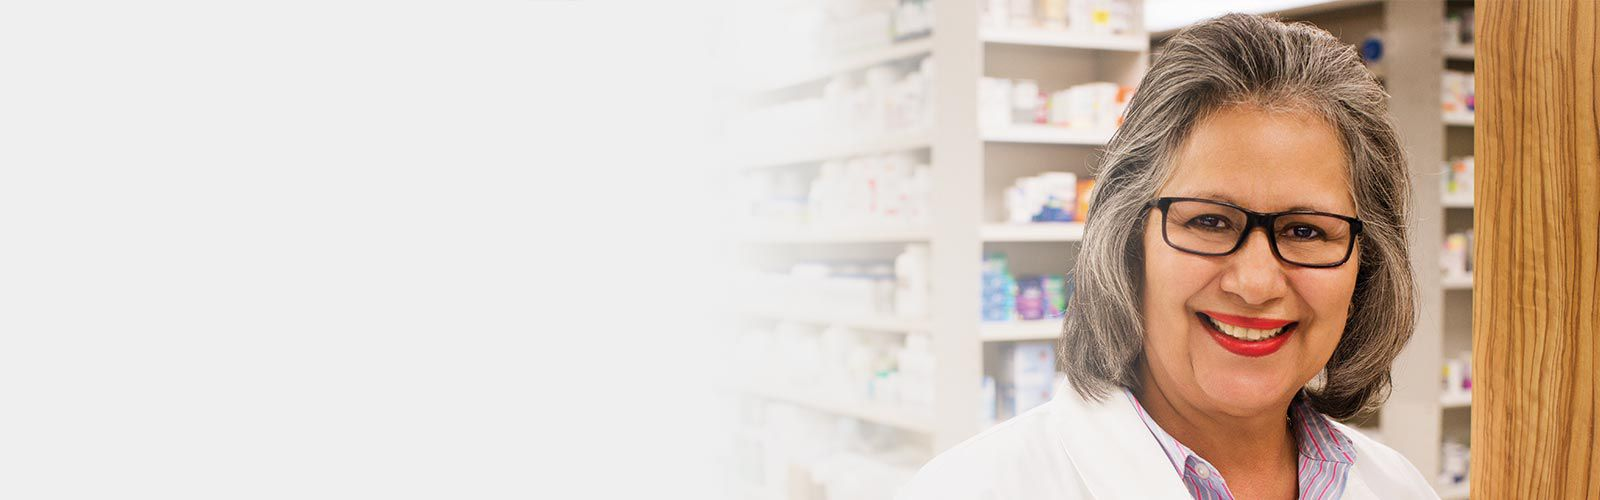 Smiling pharmacist wearing glasses and standing in front of the pharmacy shelves.